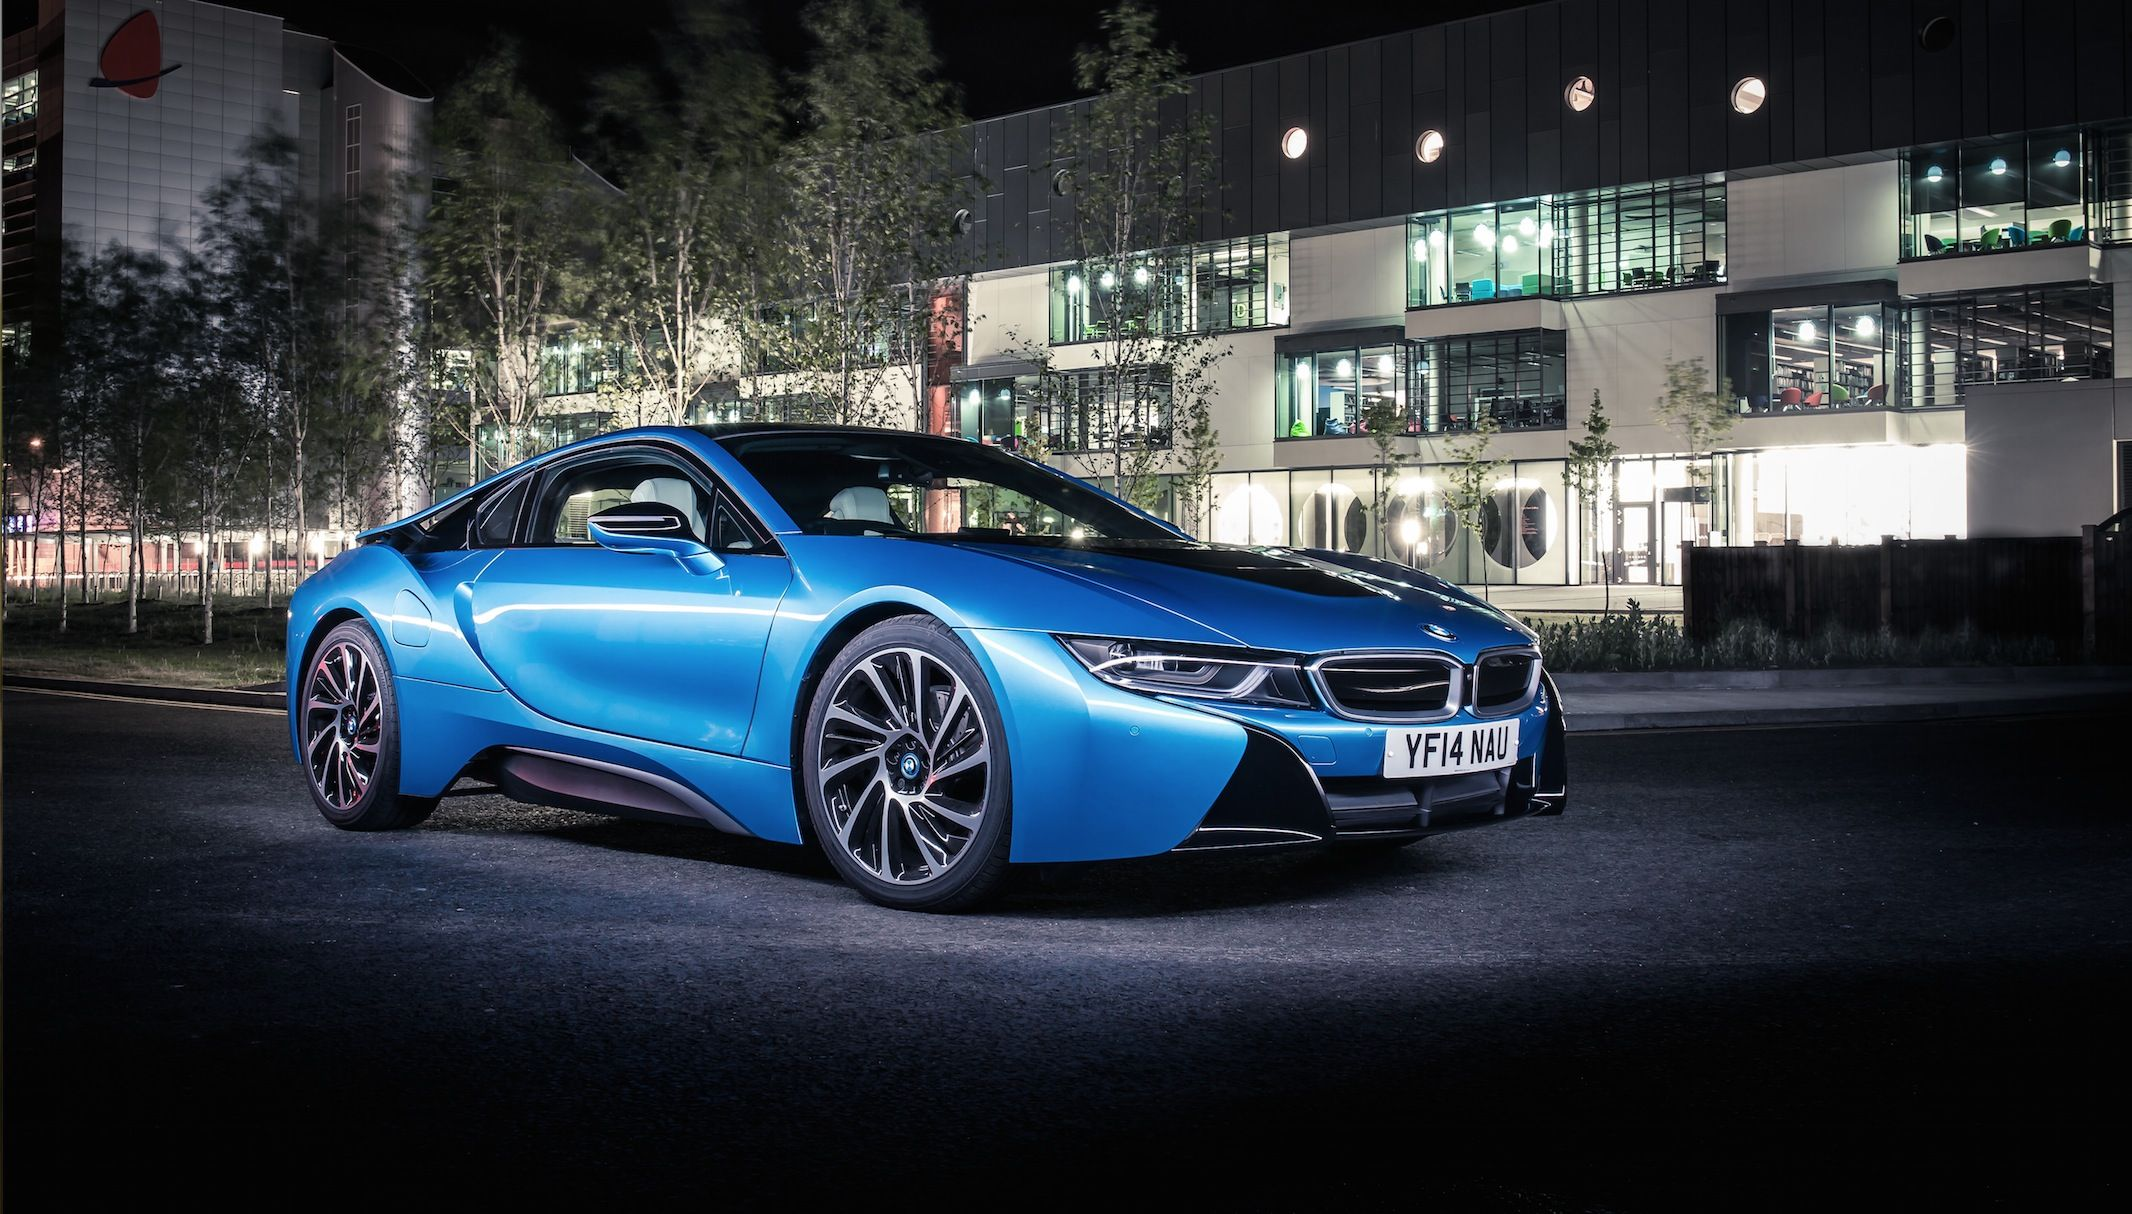 Driven Bmw I8 The Gentlemans Journal The Latest In Style And